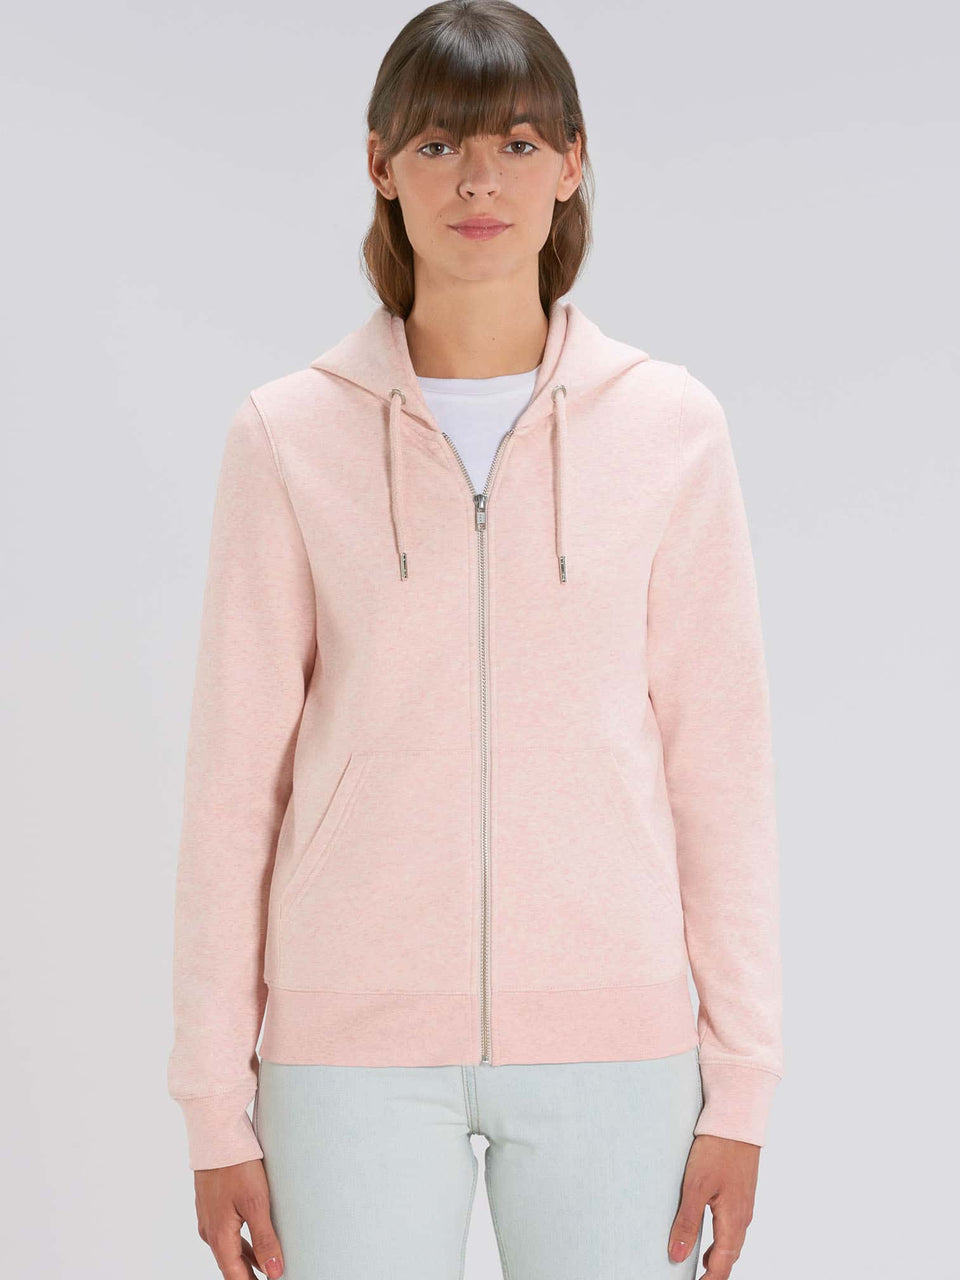 Bufo Alvarius Made To Order  Women zip-thru hoodie sweatshirt - Cream Heather Pink